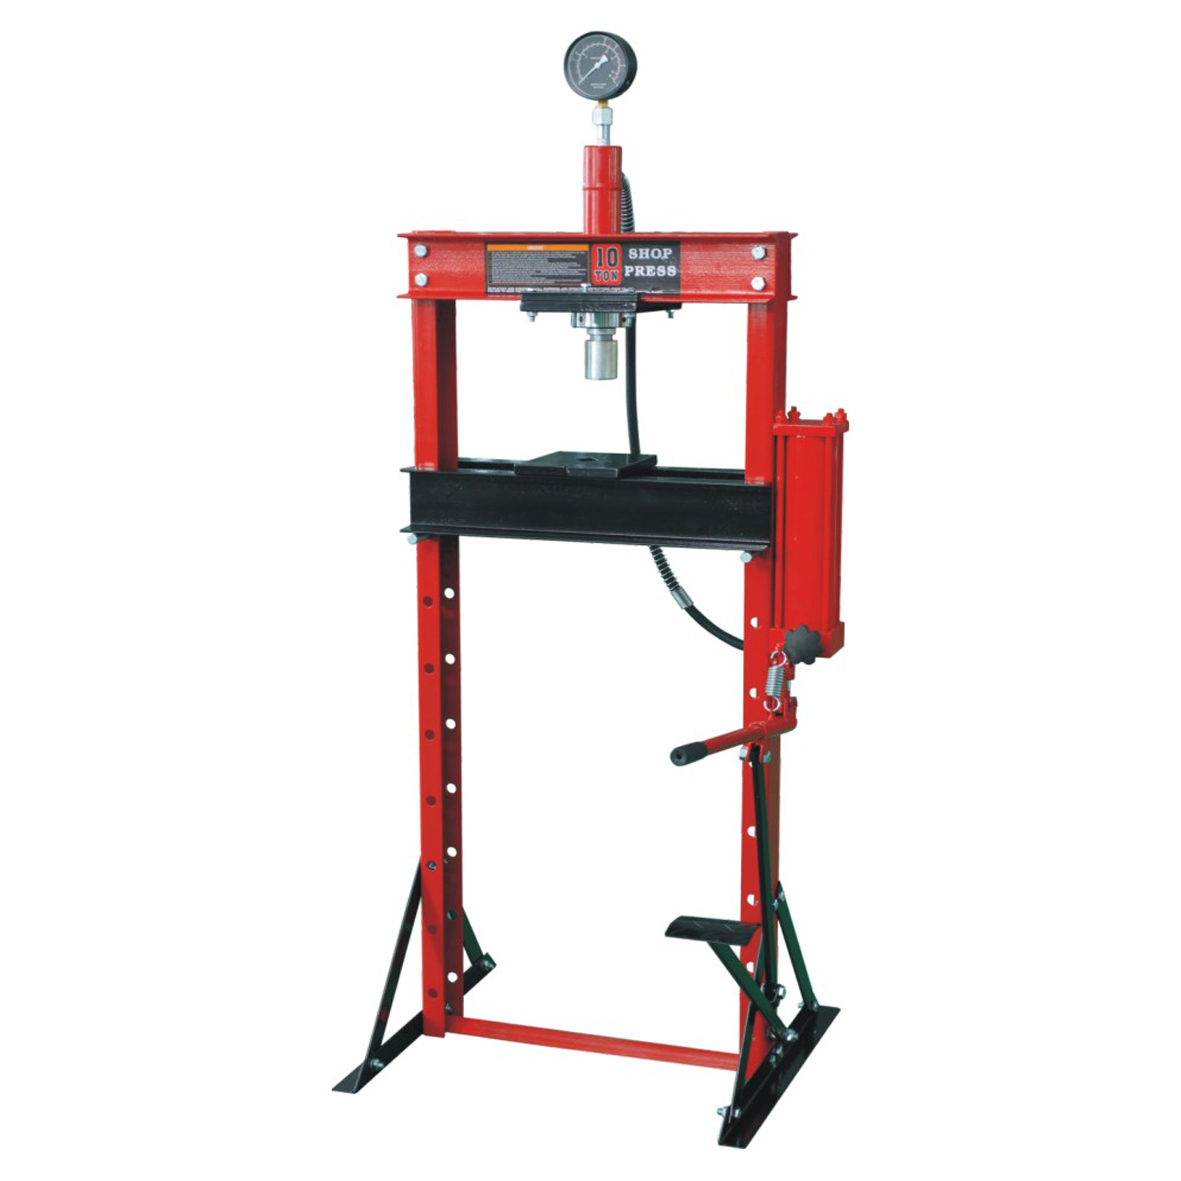 0901H 50T SHOP PRESS WITH GAUGE Featured Image